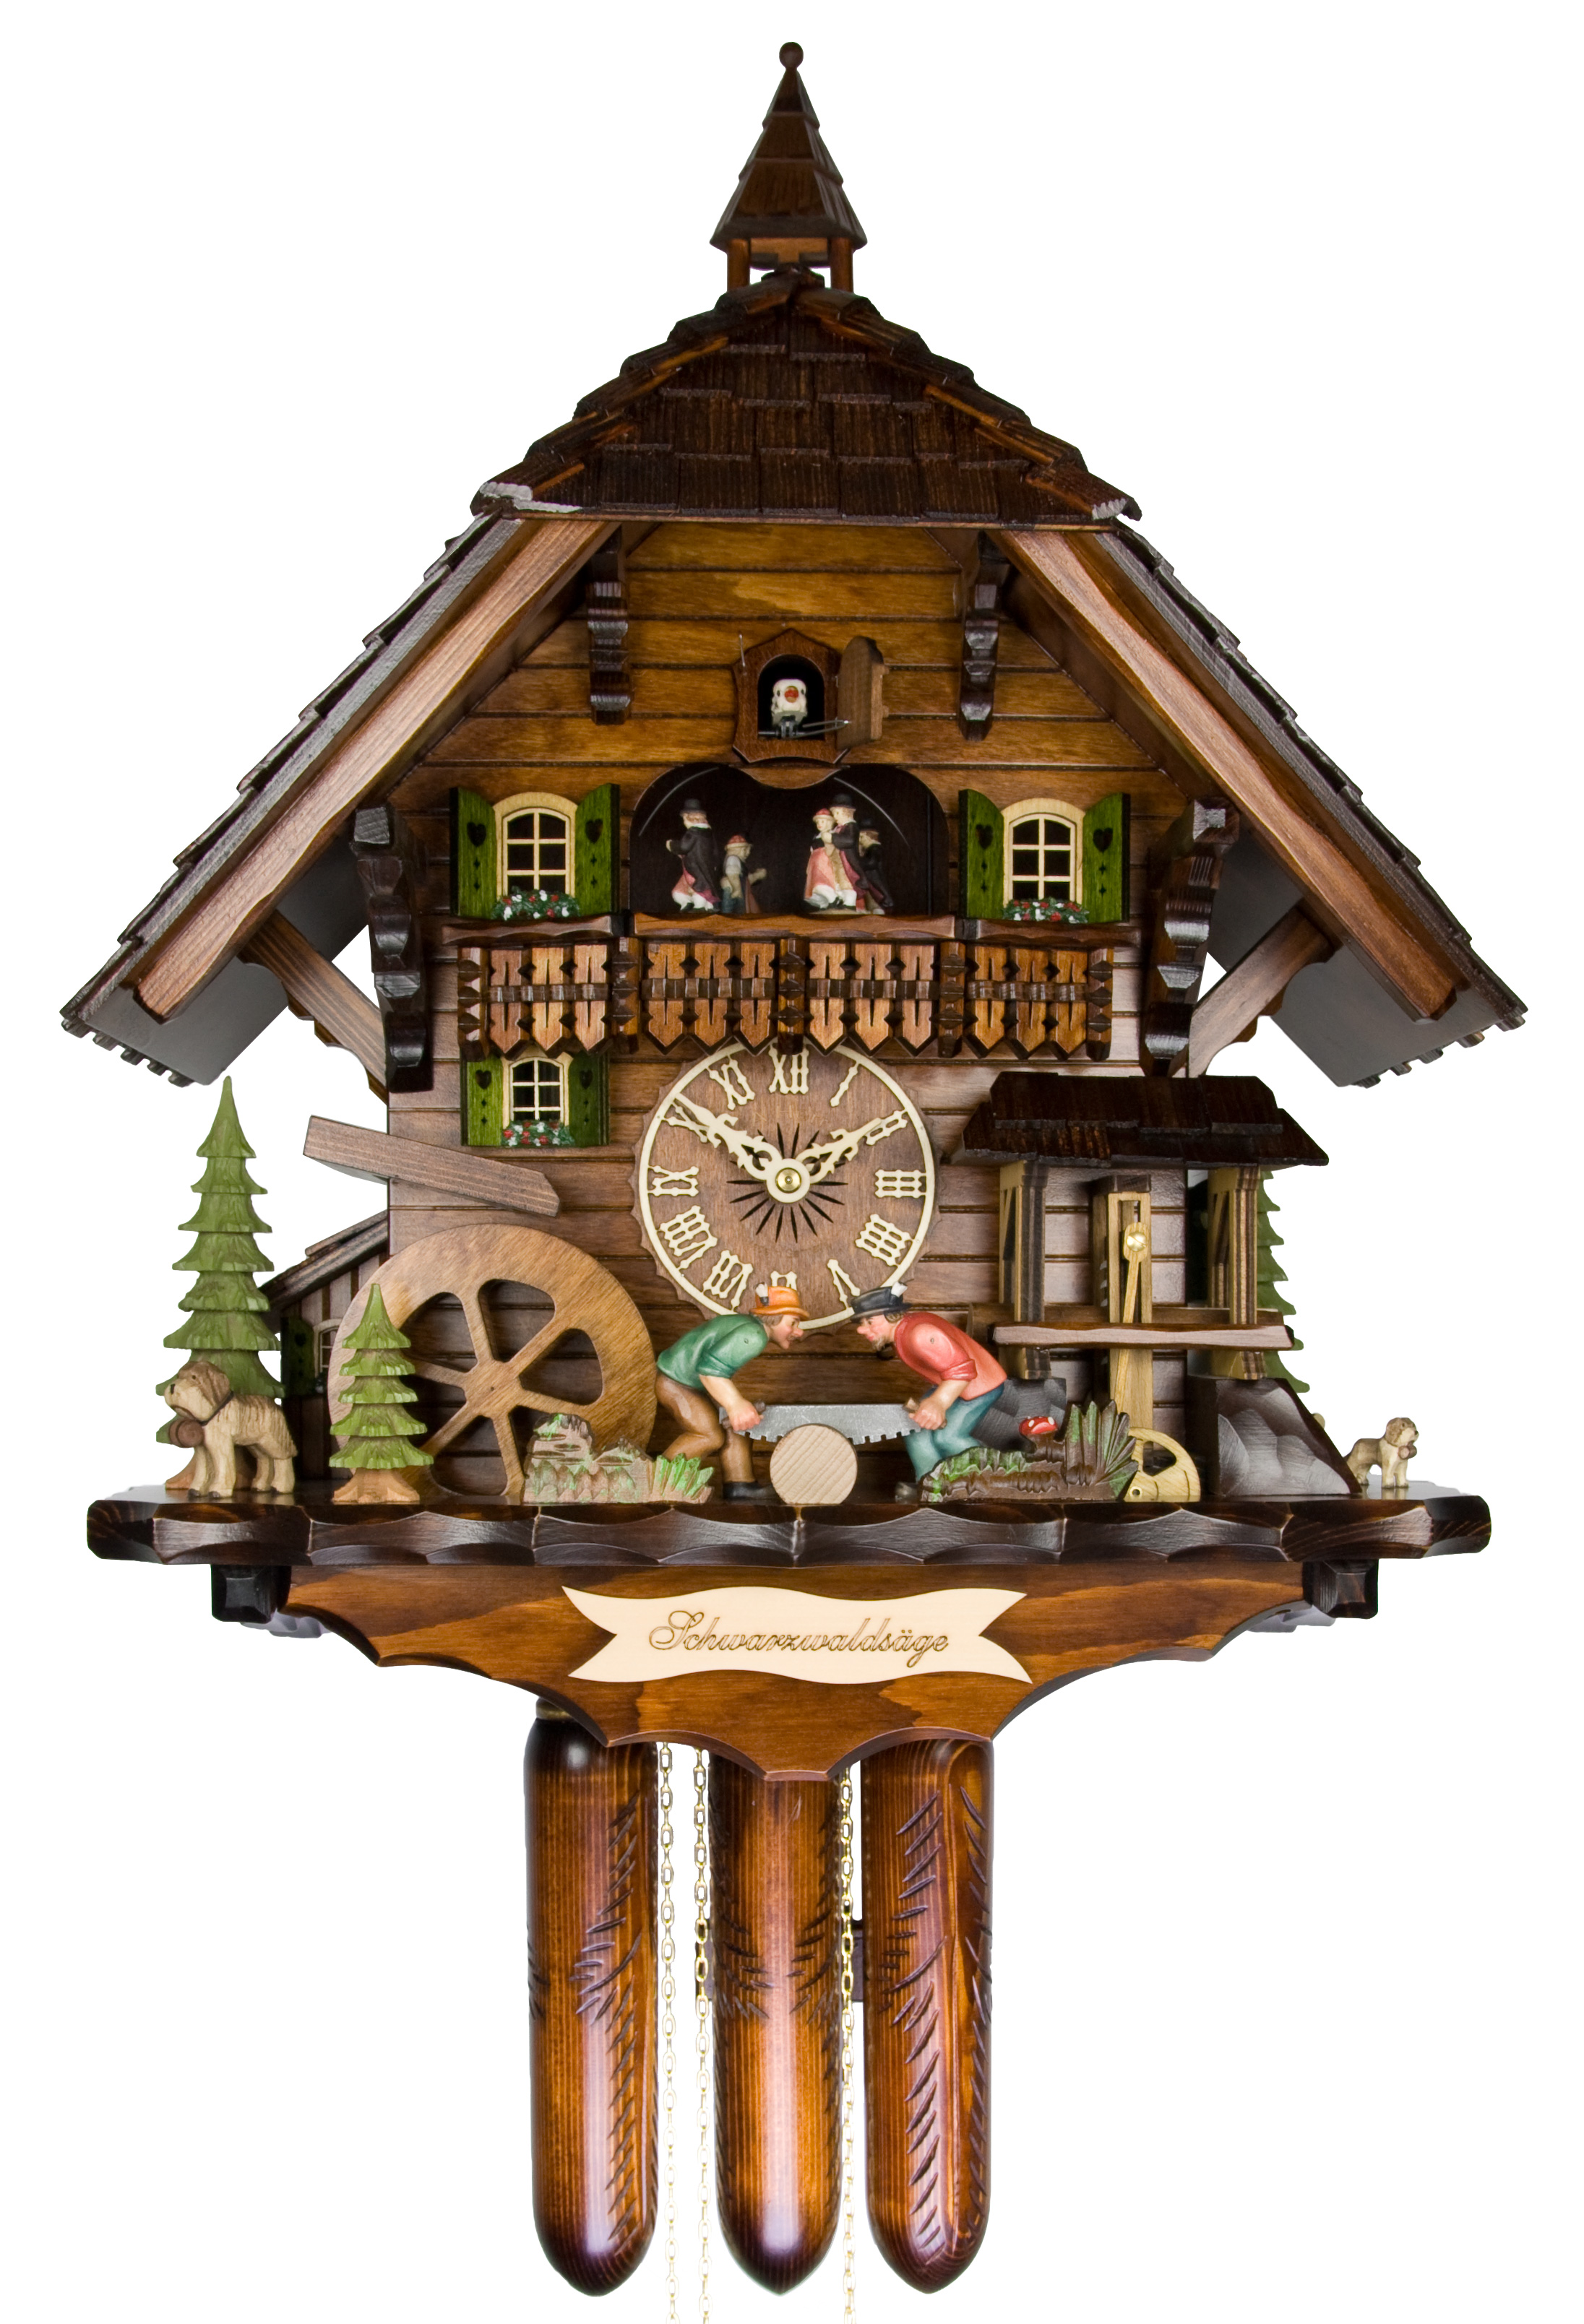 Adolf herr cuckoo clock the black forest saw mill ah 870 for Www coo